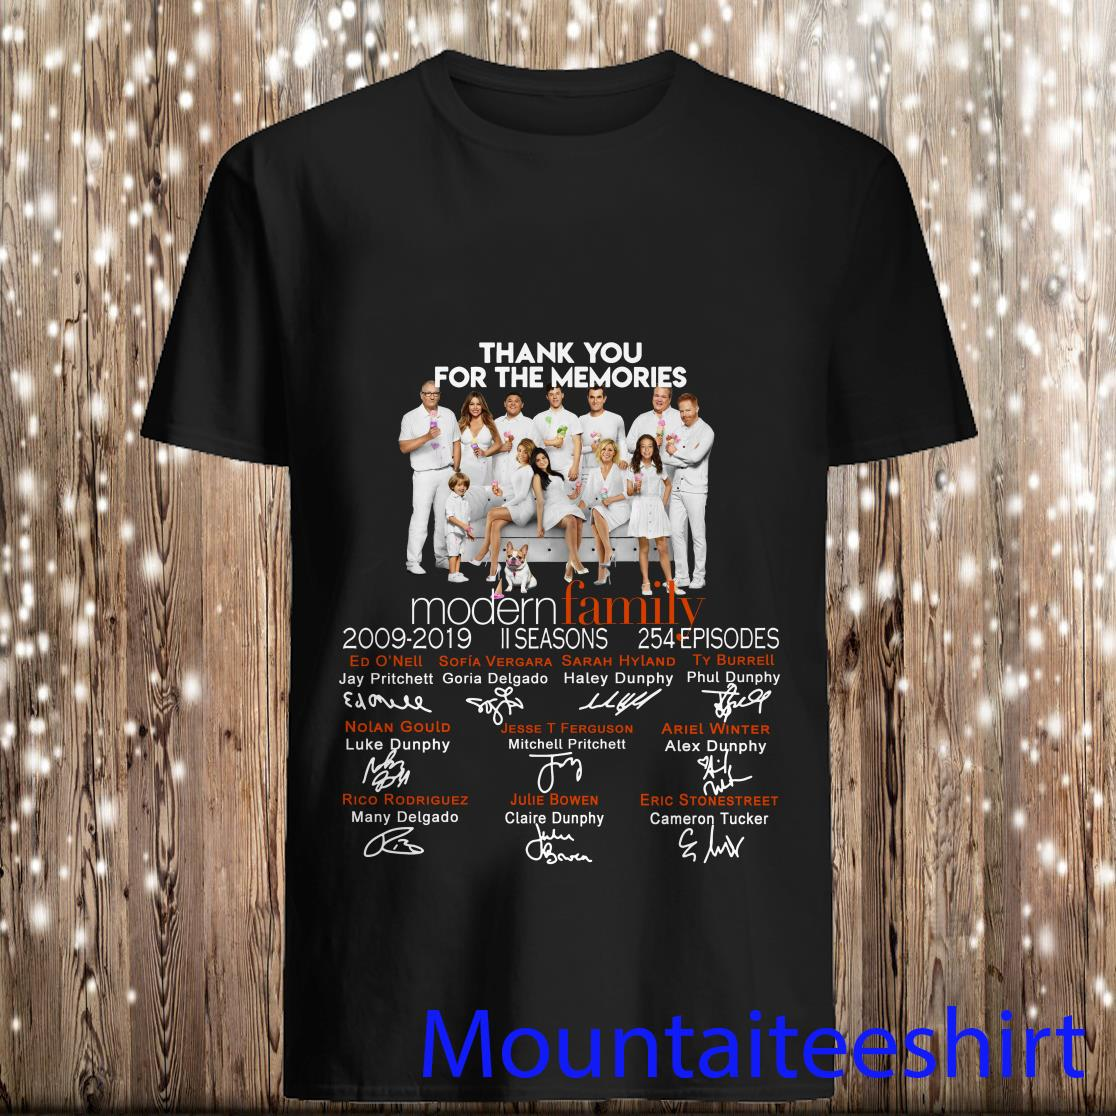 Modern Family Thank You for The Memories Shirt